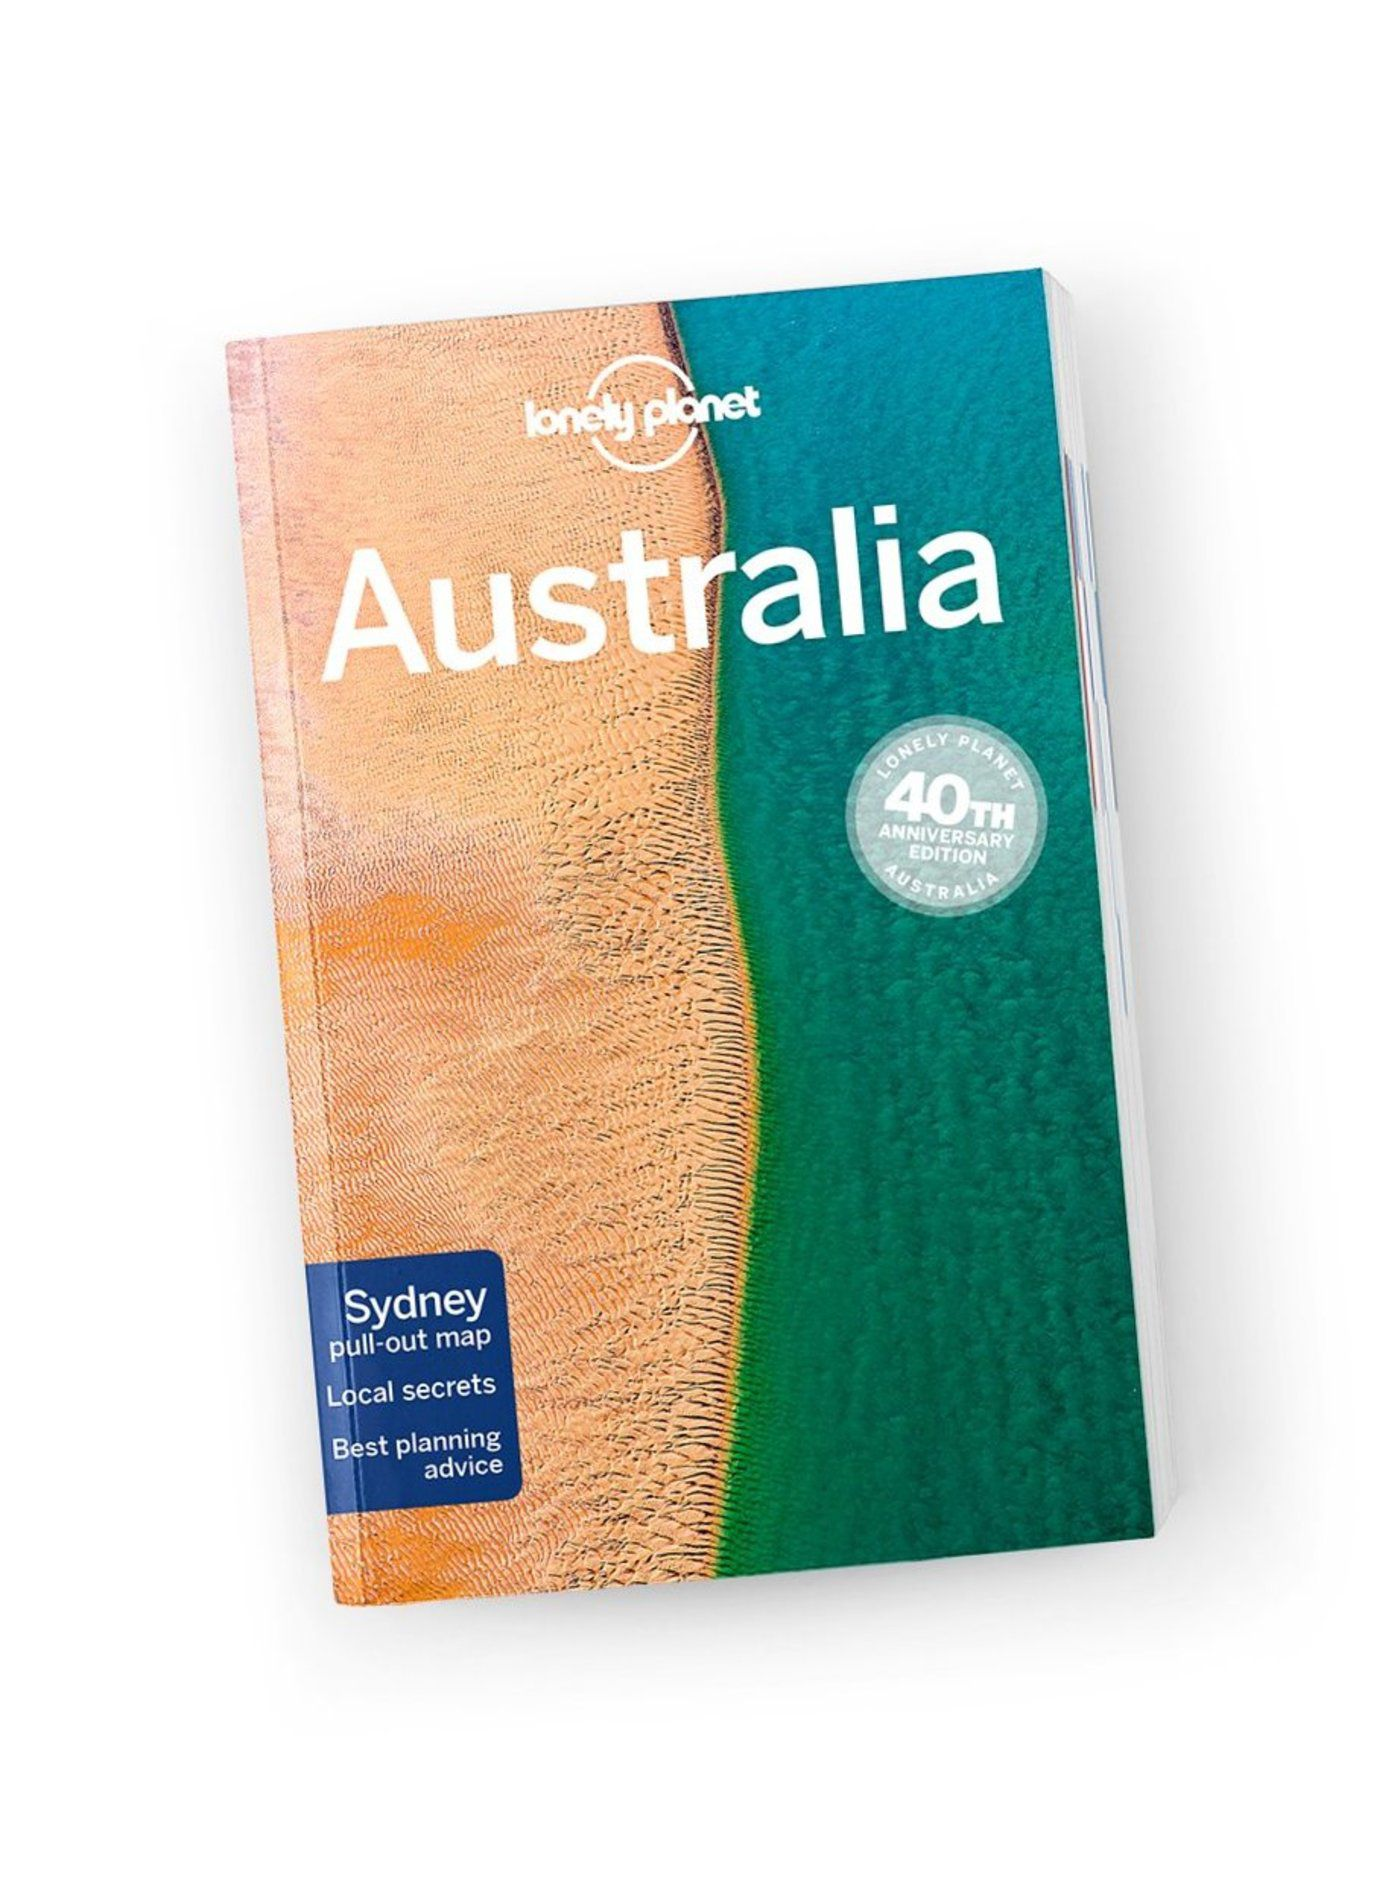 australia travel guide travel guidebook lonely planet shop rh shop lonelyplanet com Lonely Planet Slovenia lonely planet australia travel guide pdf